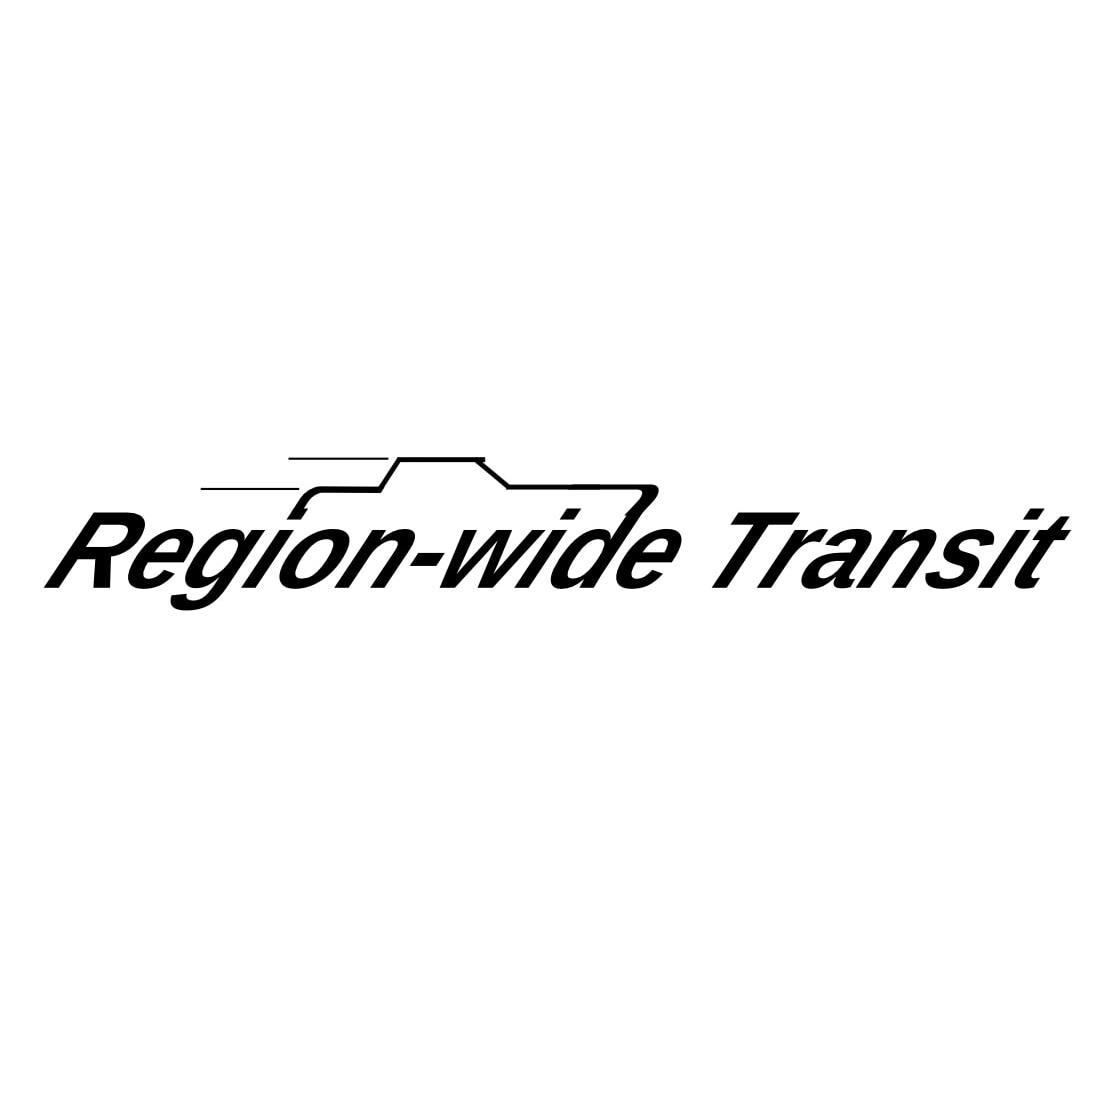 Region-wide Transit